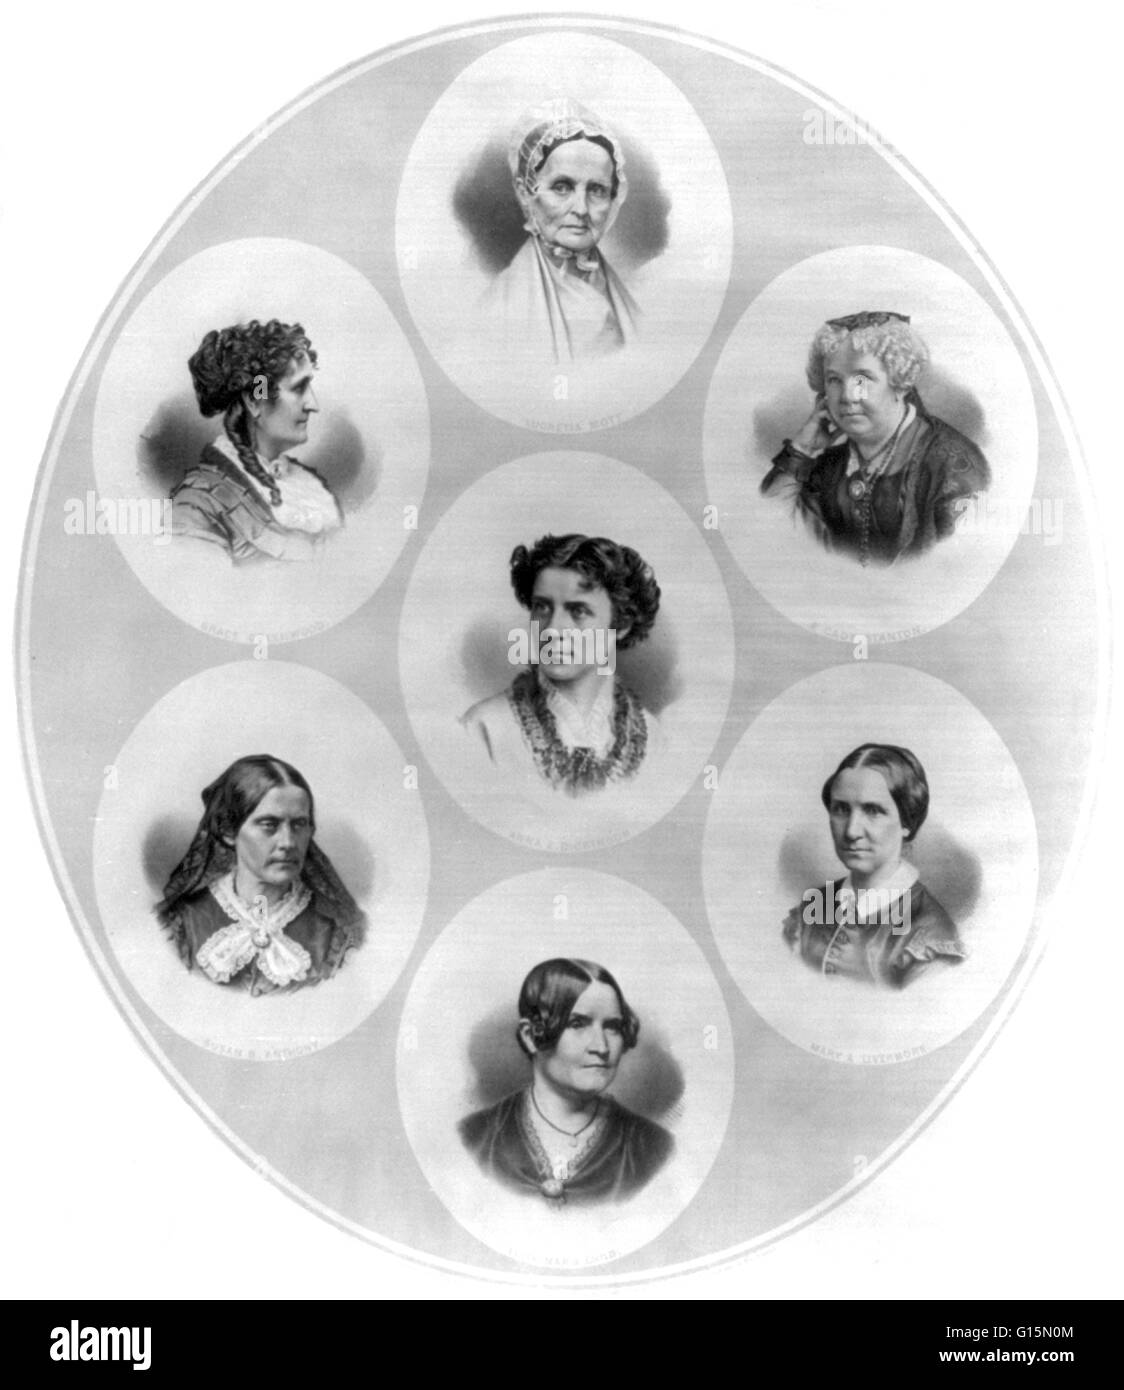 Lithograph containing portraits of seven prominent figures of the suffrage and women's rights movement. Lucretia Mott, Grace Greenwood, Elizabeth Cady Stanton, Anna Elizabeth Dickinson, Mary Ashton Rice Livermore, Susan Brownell Anthony and Lydia Maria Ch Stock Photo